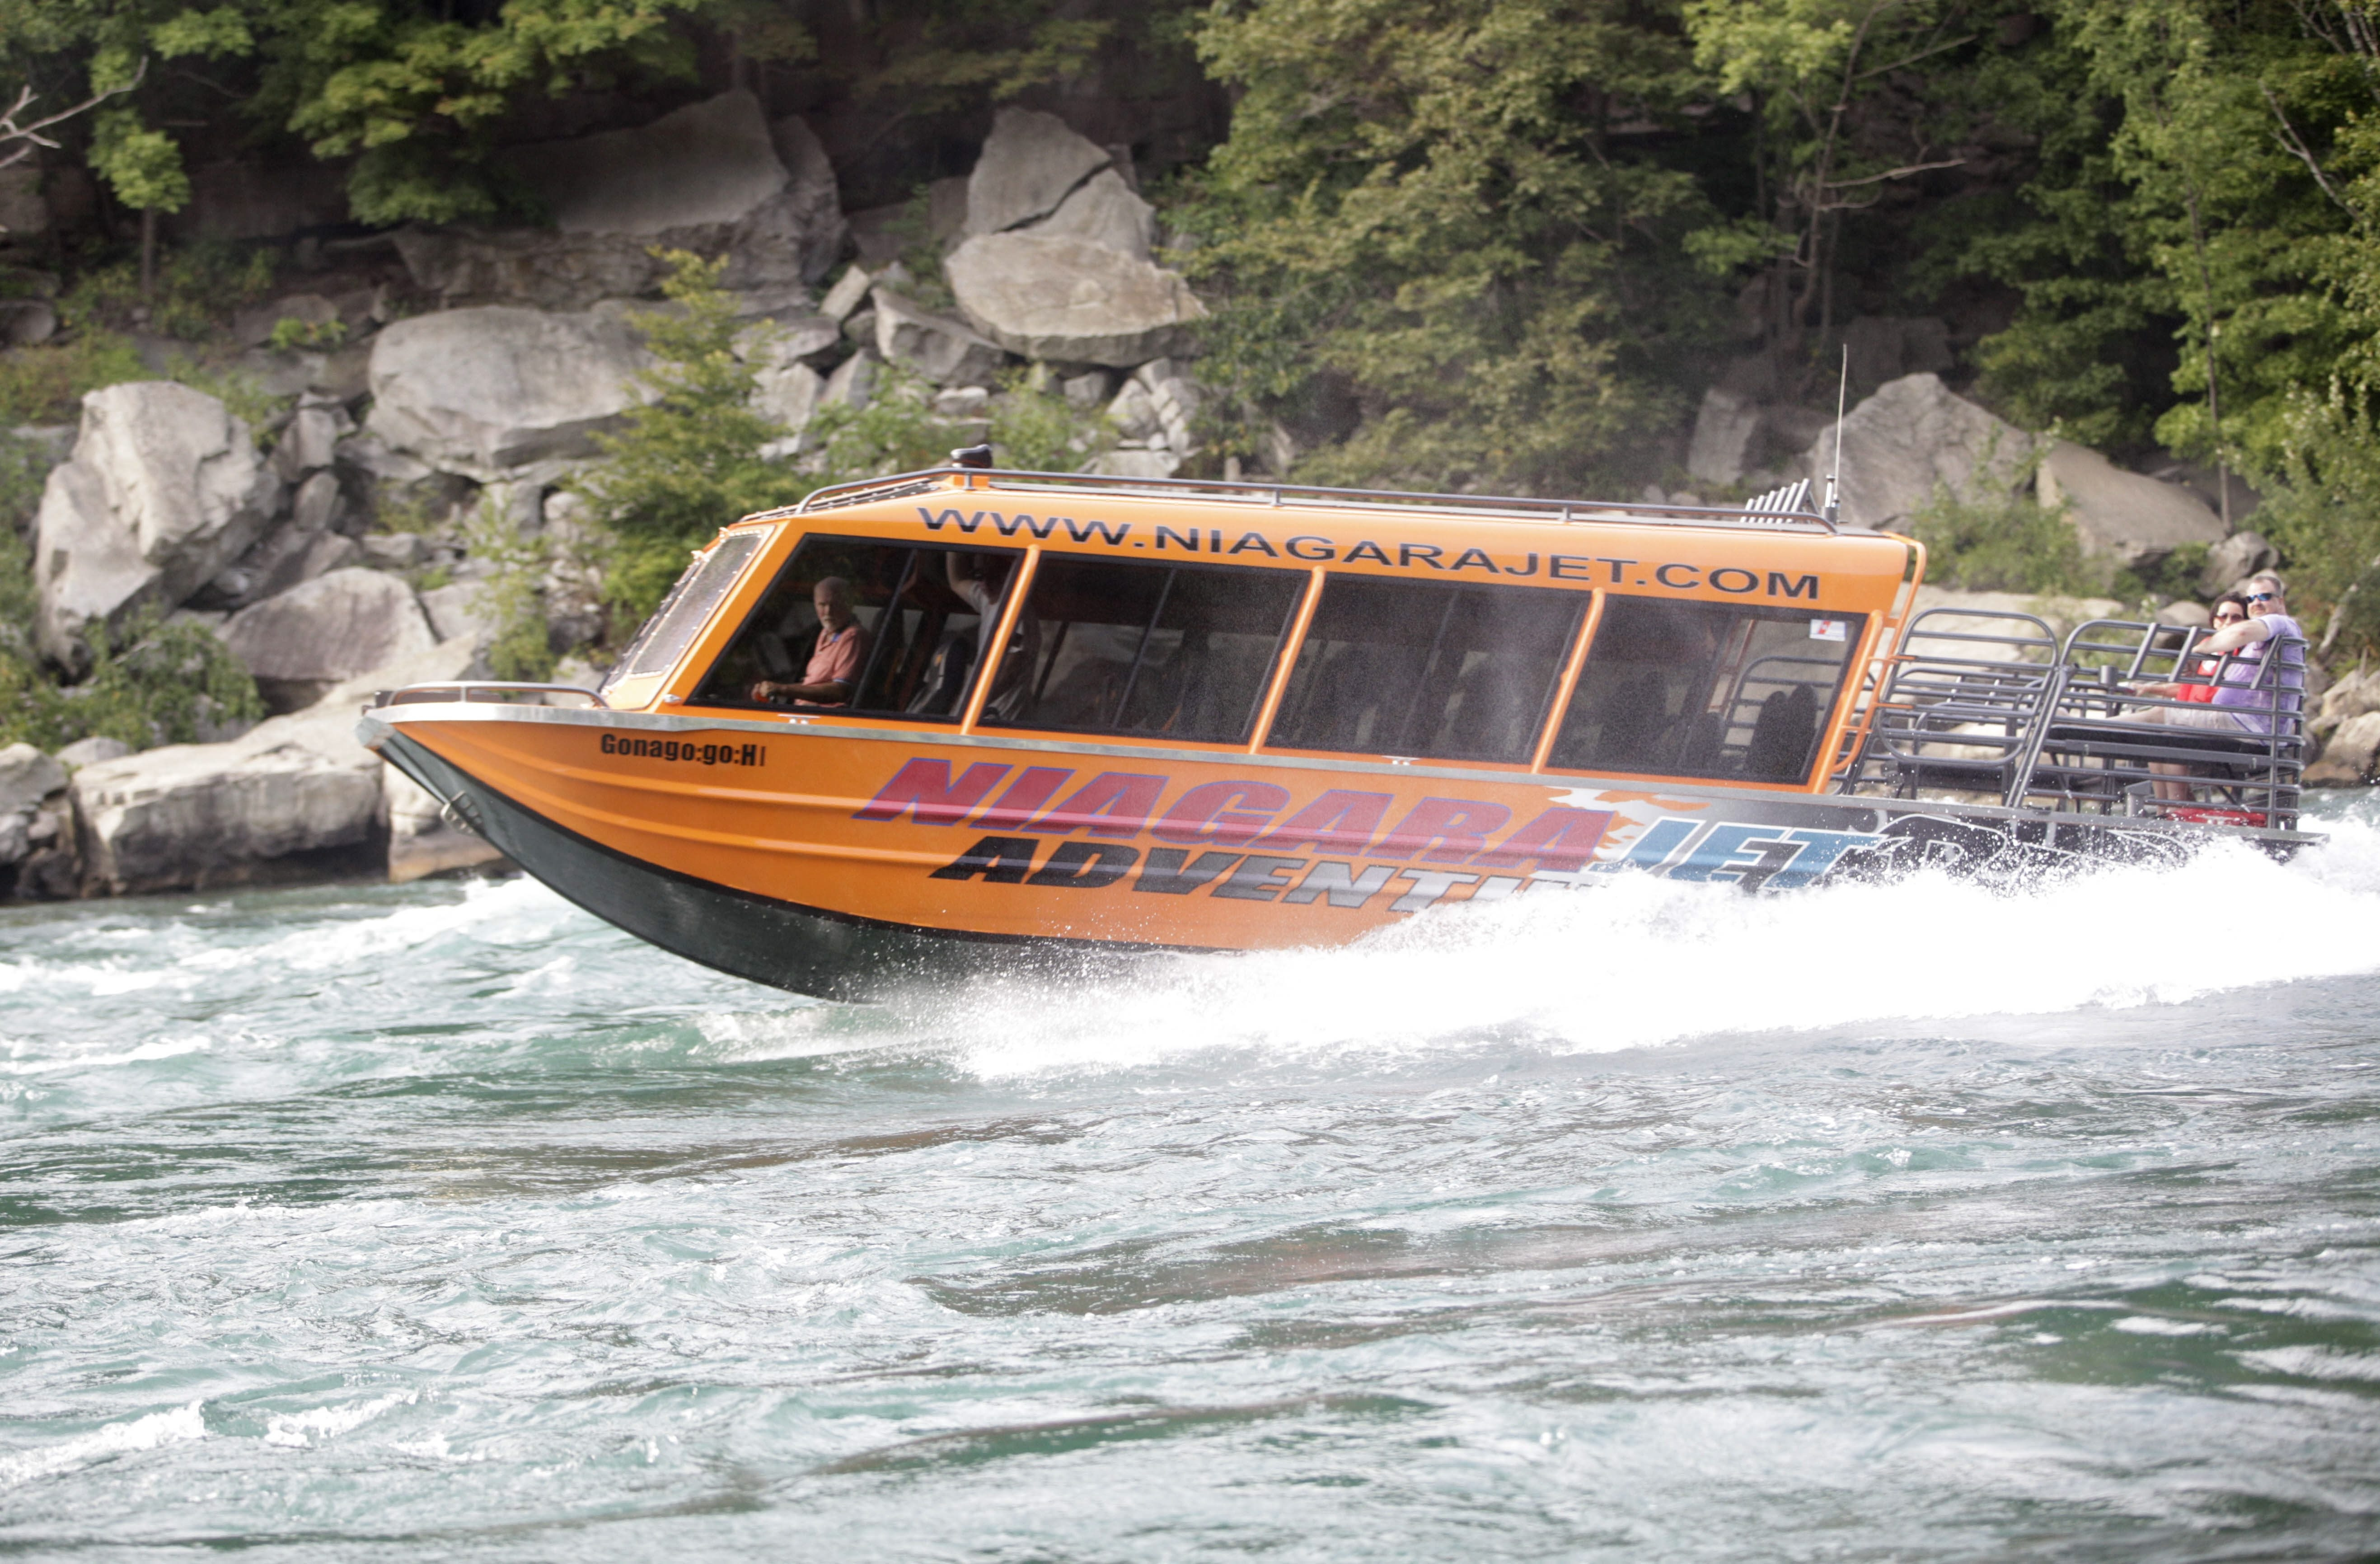 A Niagara Jetboat Adventures boat braves churning waters near Devil's Hole on Saturday. See a video and a photo gallery at BuffaloNews.com.